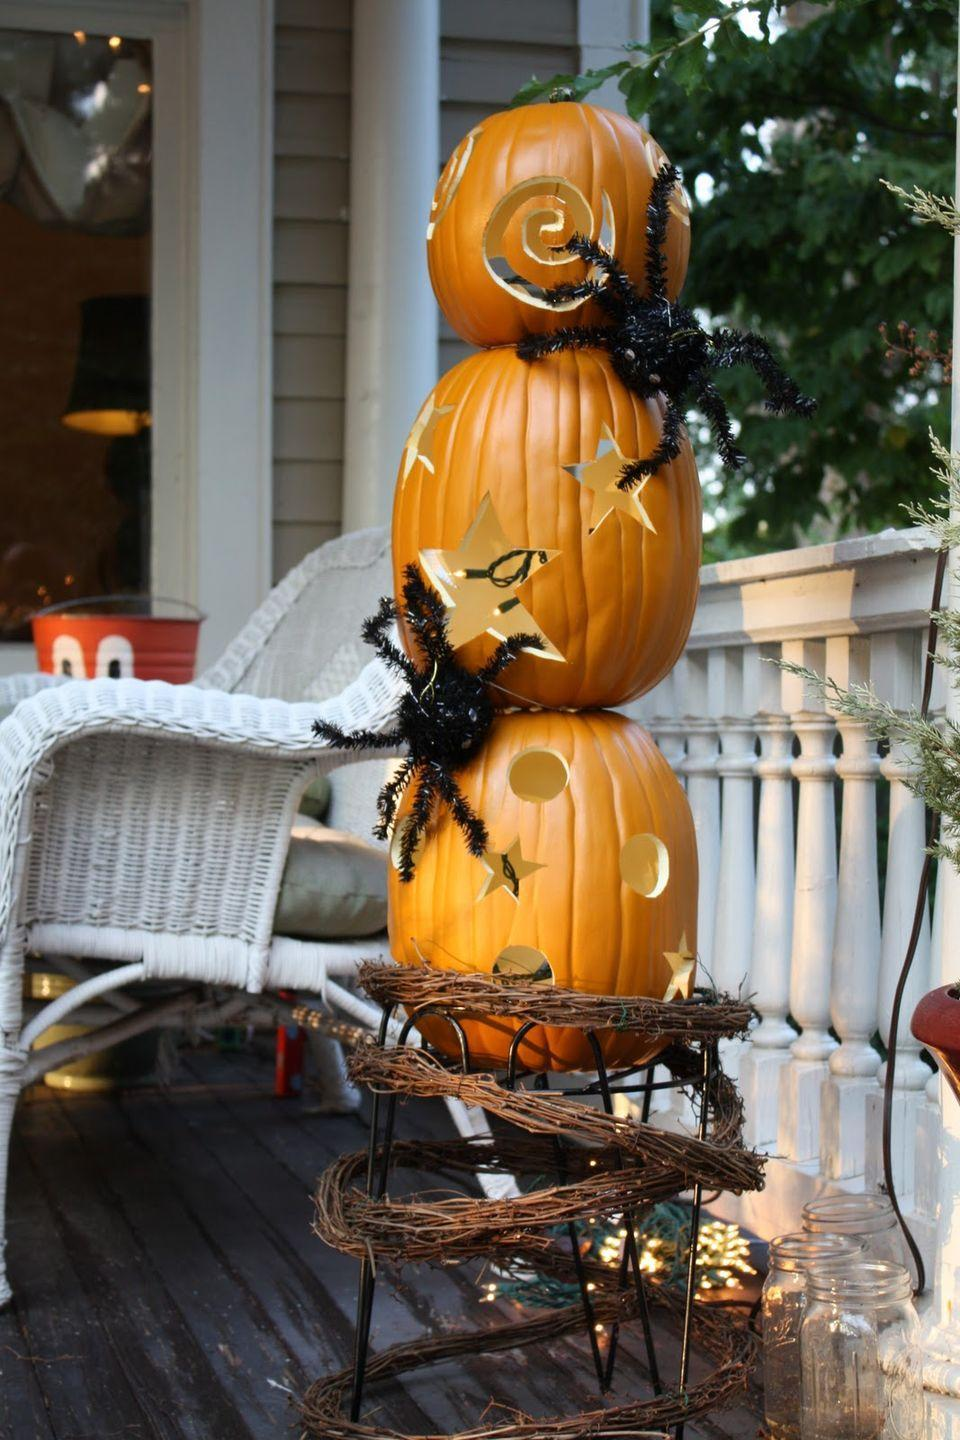 "<p>Having pumpkins on your doorstep is a great way to make guests feel welcome. Don't worry—designing this project is not as difficult as it looks.</p><p><strong>Get the tutorial at <a href=""http://oursouthernnest.blogspot.com/2010/09/pumpkin-topiary-turtorial.html"" rel=""nofollow noopener"" target=""_blank"" data-ylk=""slk:Our Southern Nest"" class=""link rapid-noclick-resp"">Our Southern Nest</a>.</strong></p>"